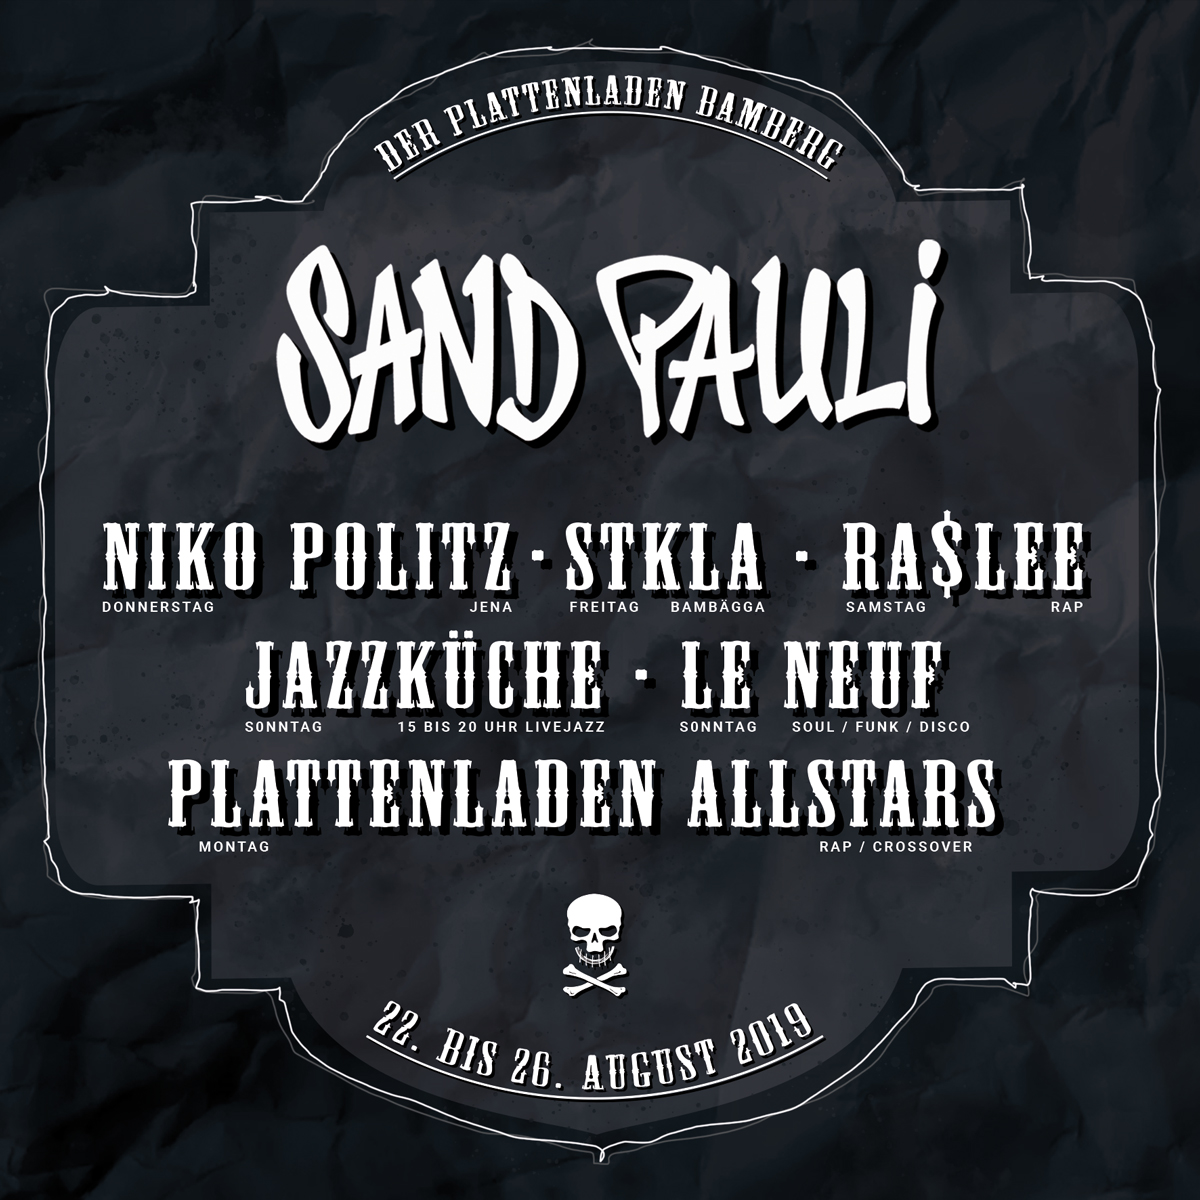 QUAD SANDPAULI 2019 DJs